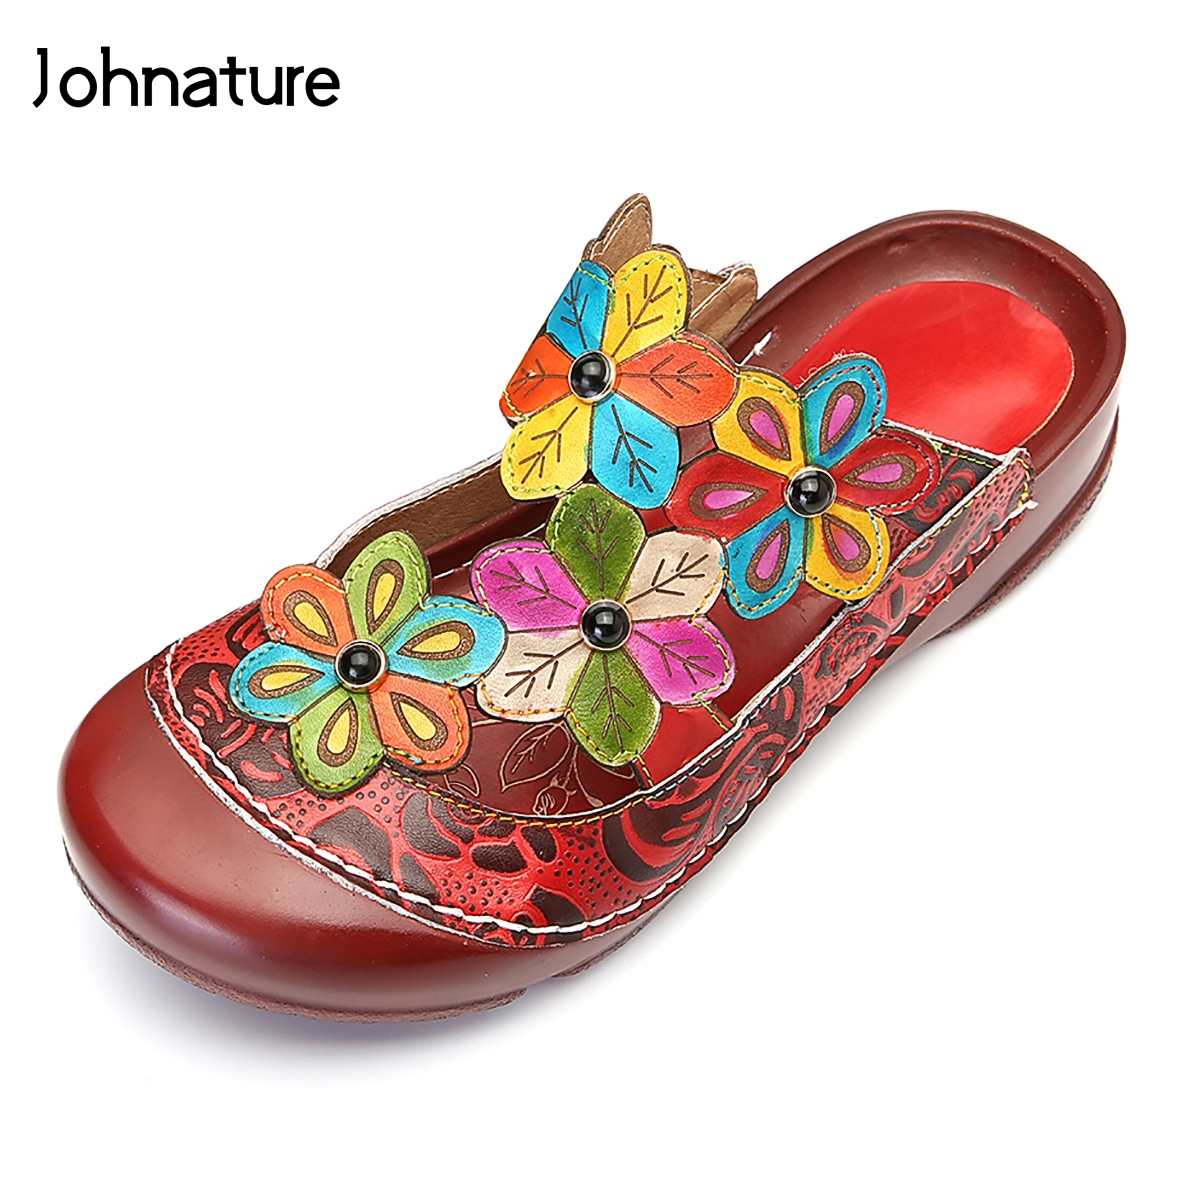 Johnature 2019 New Summer Genuine Leather Hand painted Outside Slippers Sewing Flower Flat With Sandals Women